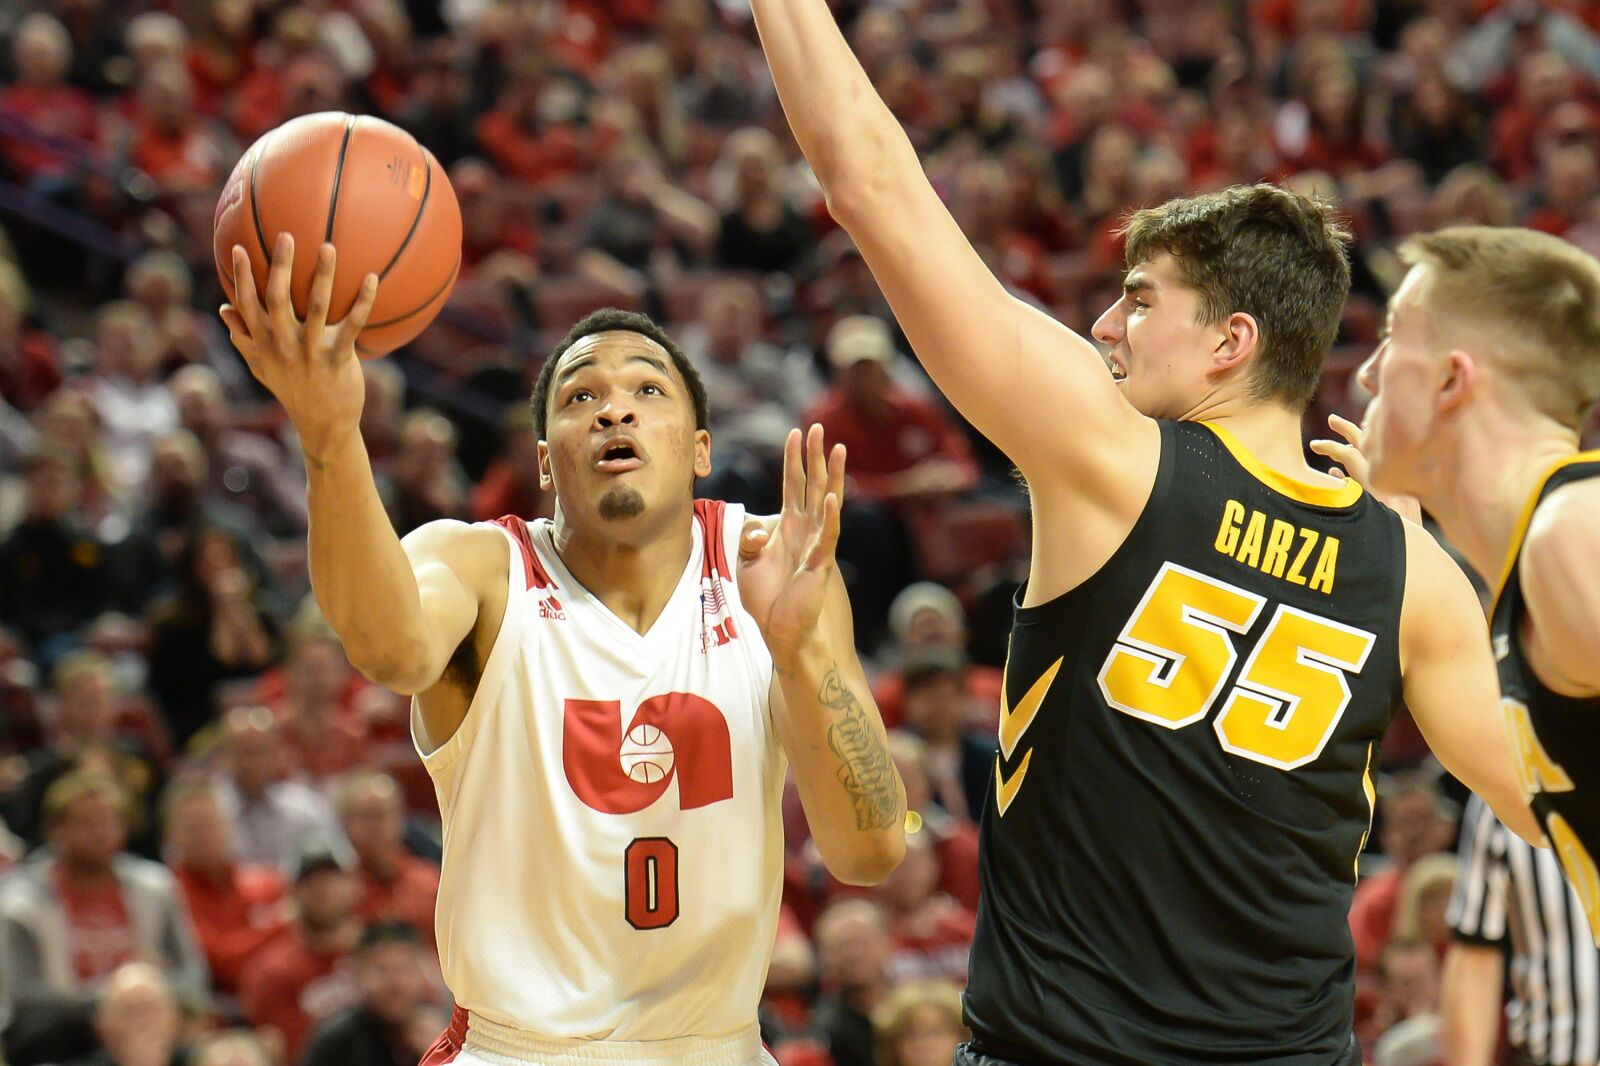 f3199adac2b Nebraska Basketball: Seniors end on high note with upset of Iowa